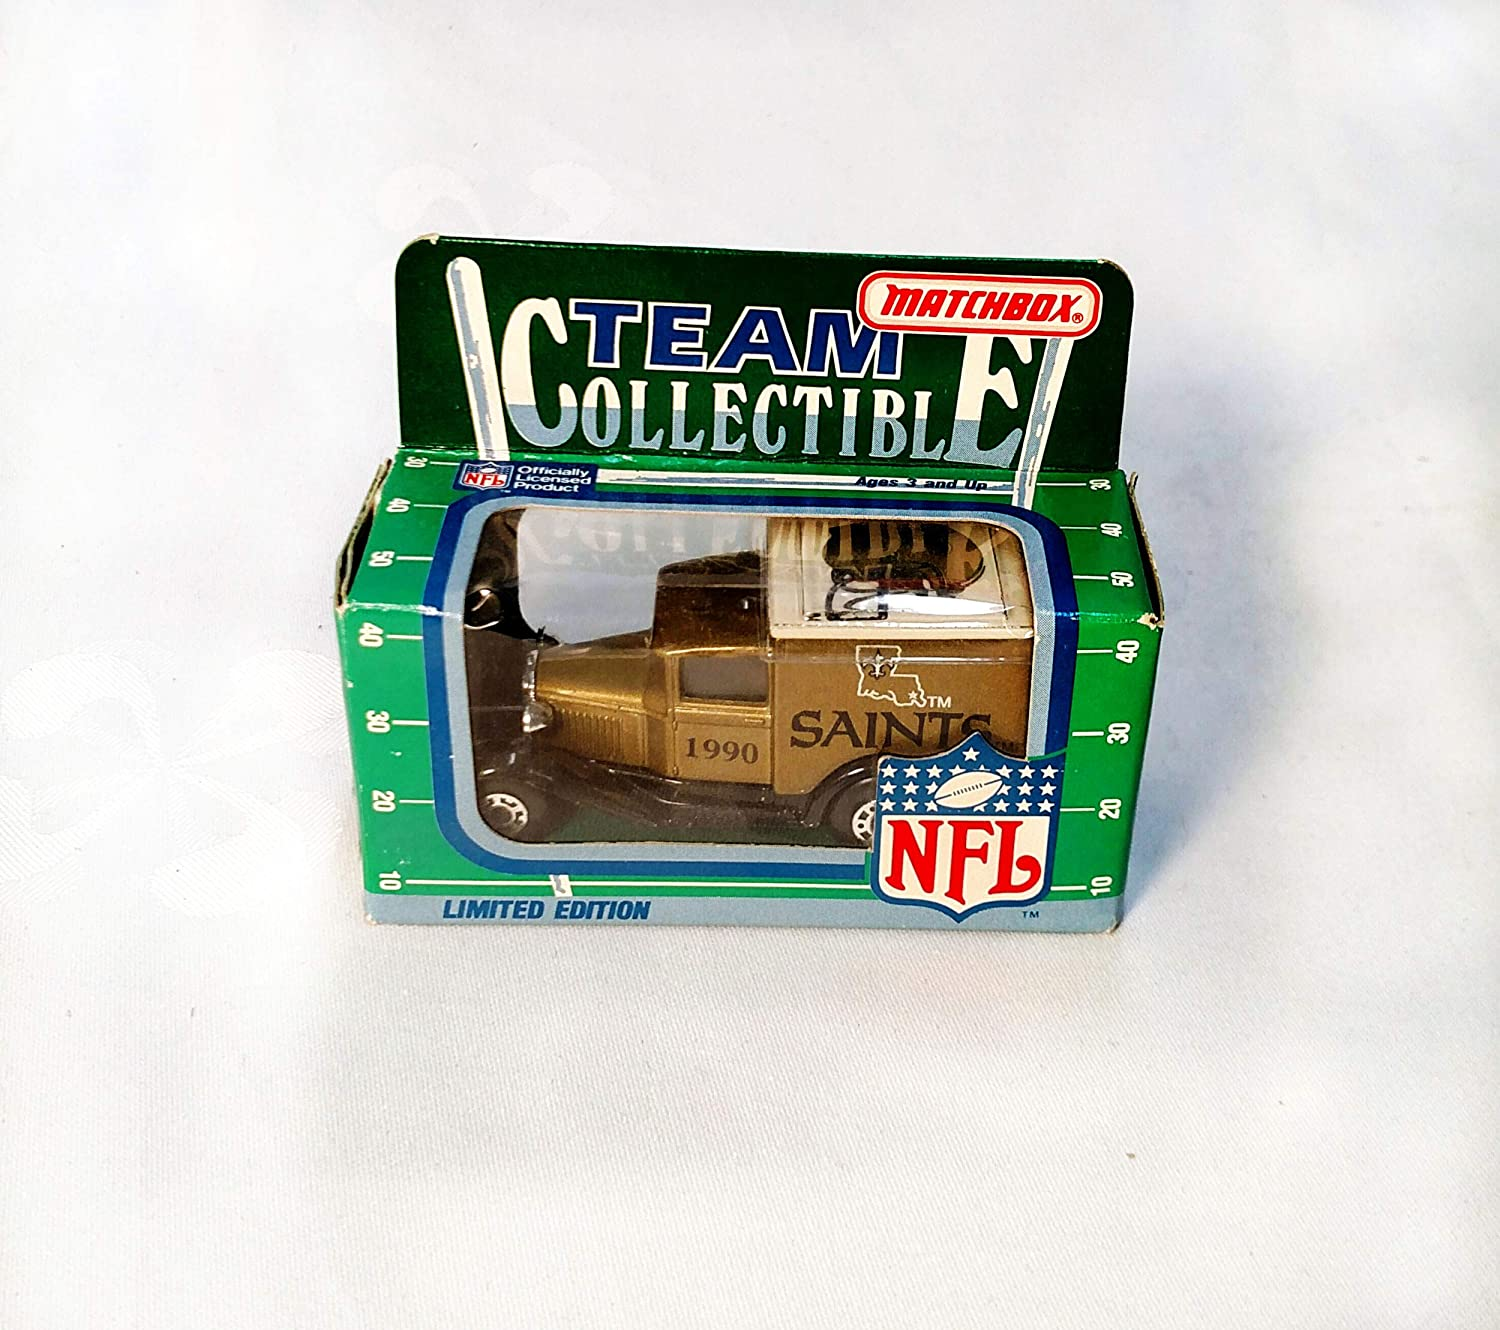 New Orleans Saints 1990 Limited Edition Matchbox Die Cast Collectible